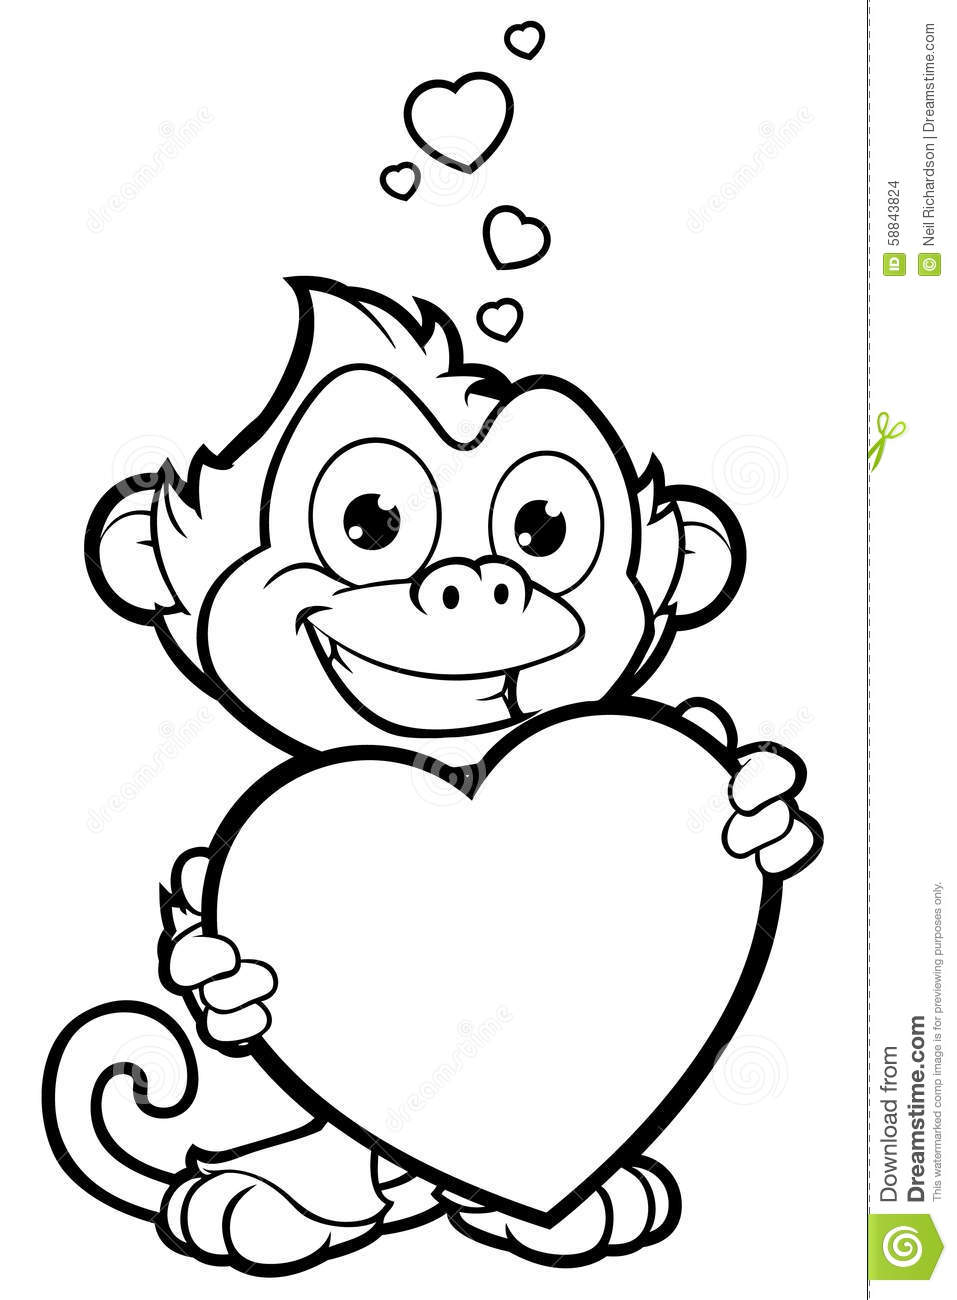 Cheeky Monkey Character In Black & White Stock Vector ...